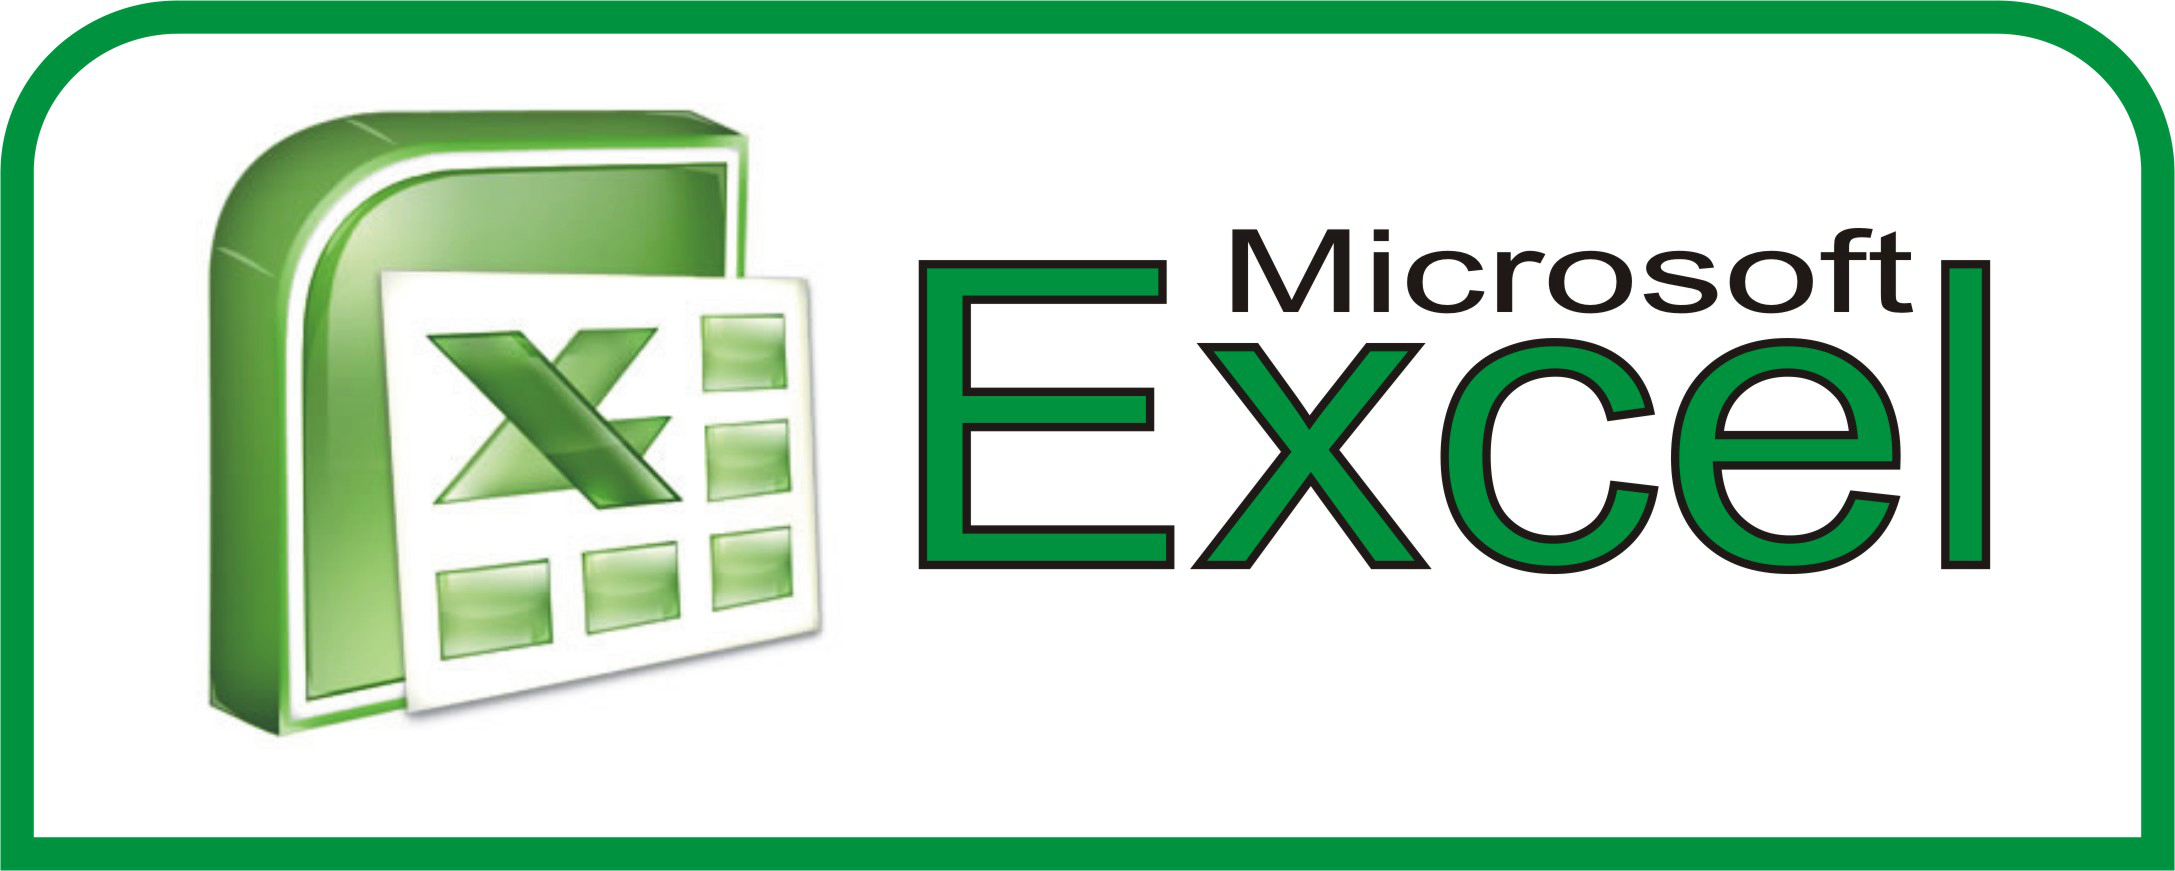 Ediblewildsus  Prepossessing  Excel Shortcuts You Probably Didnt Know About  Techdissected With Goodlooking Lease Amortization Schedule Excel Besides Microsoft Office Excel Viewer Furthermore How To Calculate Loan Payment In Excel With Comely Rate In Excel Also Pdf To Excel Converter For Mac In Addition Recipe Template Excel And Excel Chart Tools As Well As Function For Subtraction In Excel Additionally Excel Footnotes From Techdissectedcom With Ediblewildsus  Goodlooking  Excel Shortcuts You Probably Didnt Know About  Techdissected With Comely Lease Amortization Schedule Excel Besides Microsoft Office Excel Viewer Furthermore How To Calculate Loan Payment In Excel And Prepossessing Rate In Excel Also Pdf To Excel Converter For Mac In Addition Recipe Template Excel From Techdissectedcom